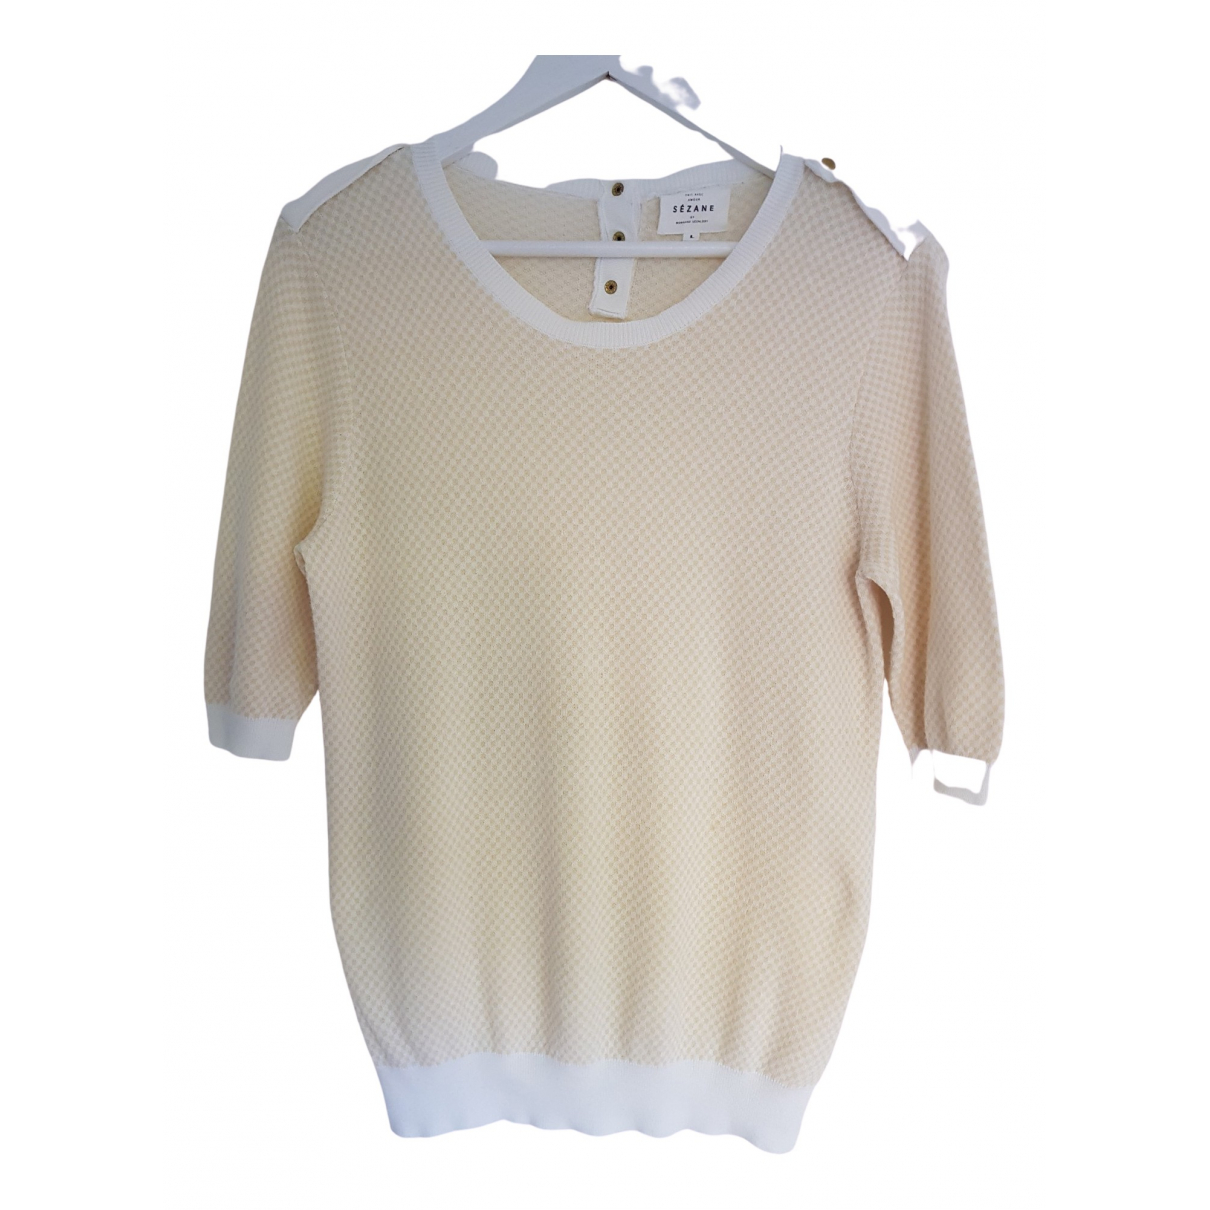 Sézane Spring Summer 2019 Beige Cotton Knitwear for Women L International